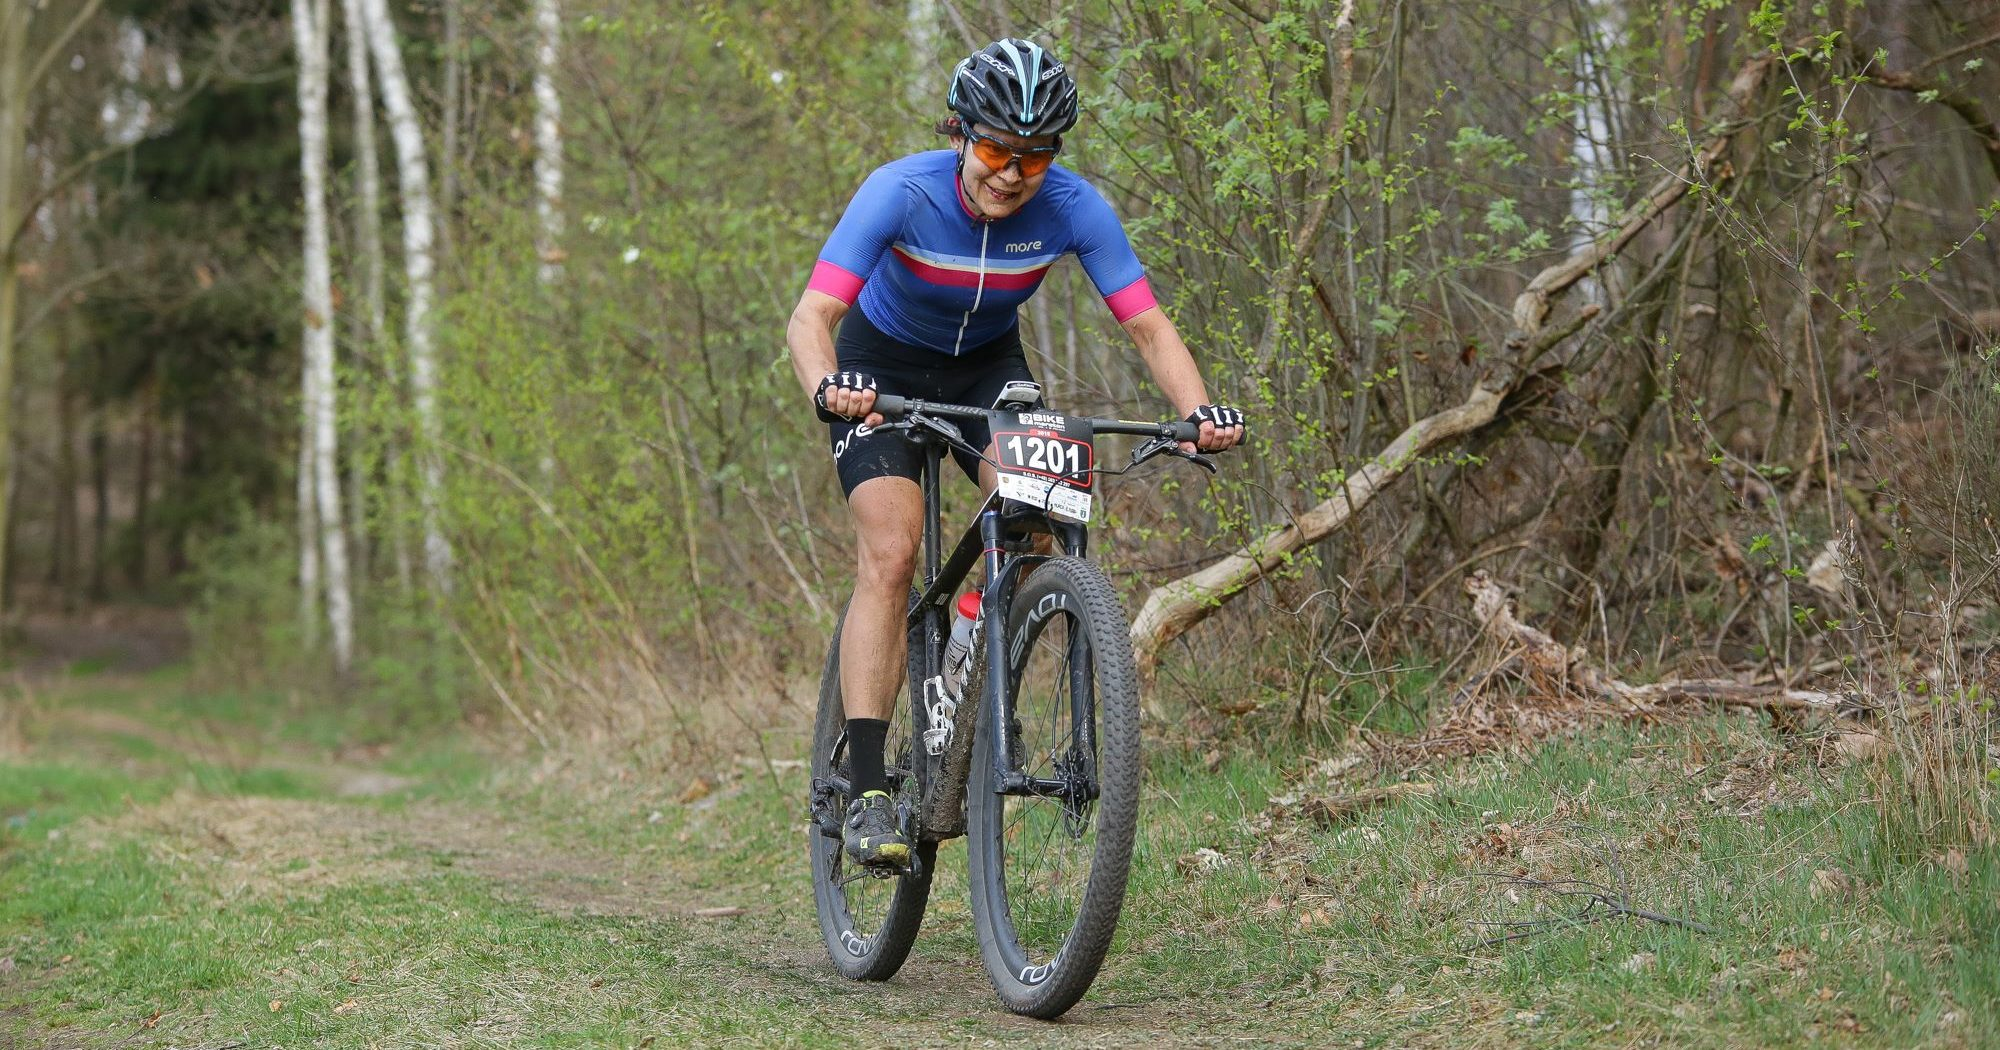 Anna Sadowska (72D Windsport powered by Oshee) – Bike Maraton, Miękinia